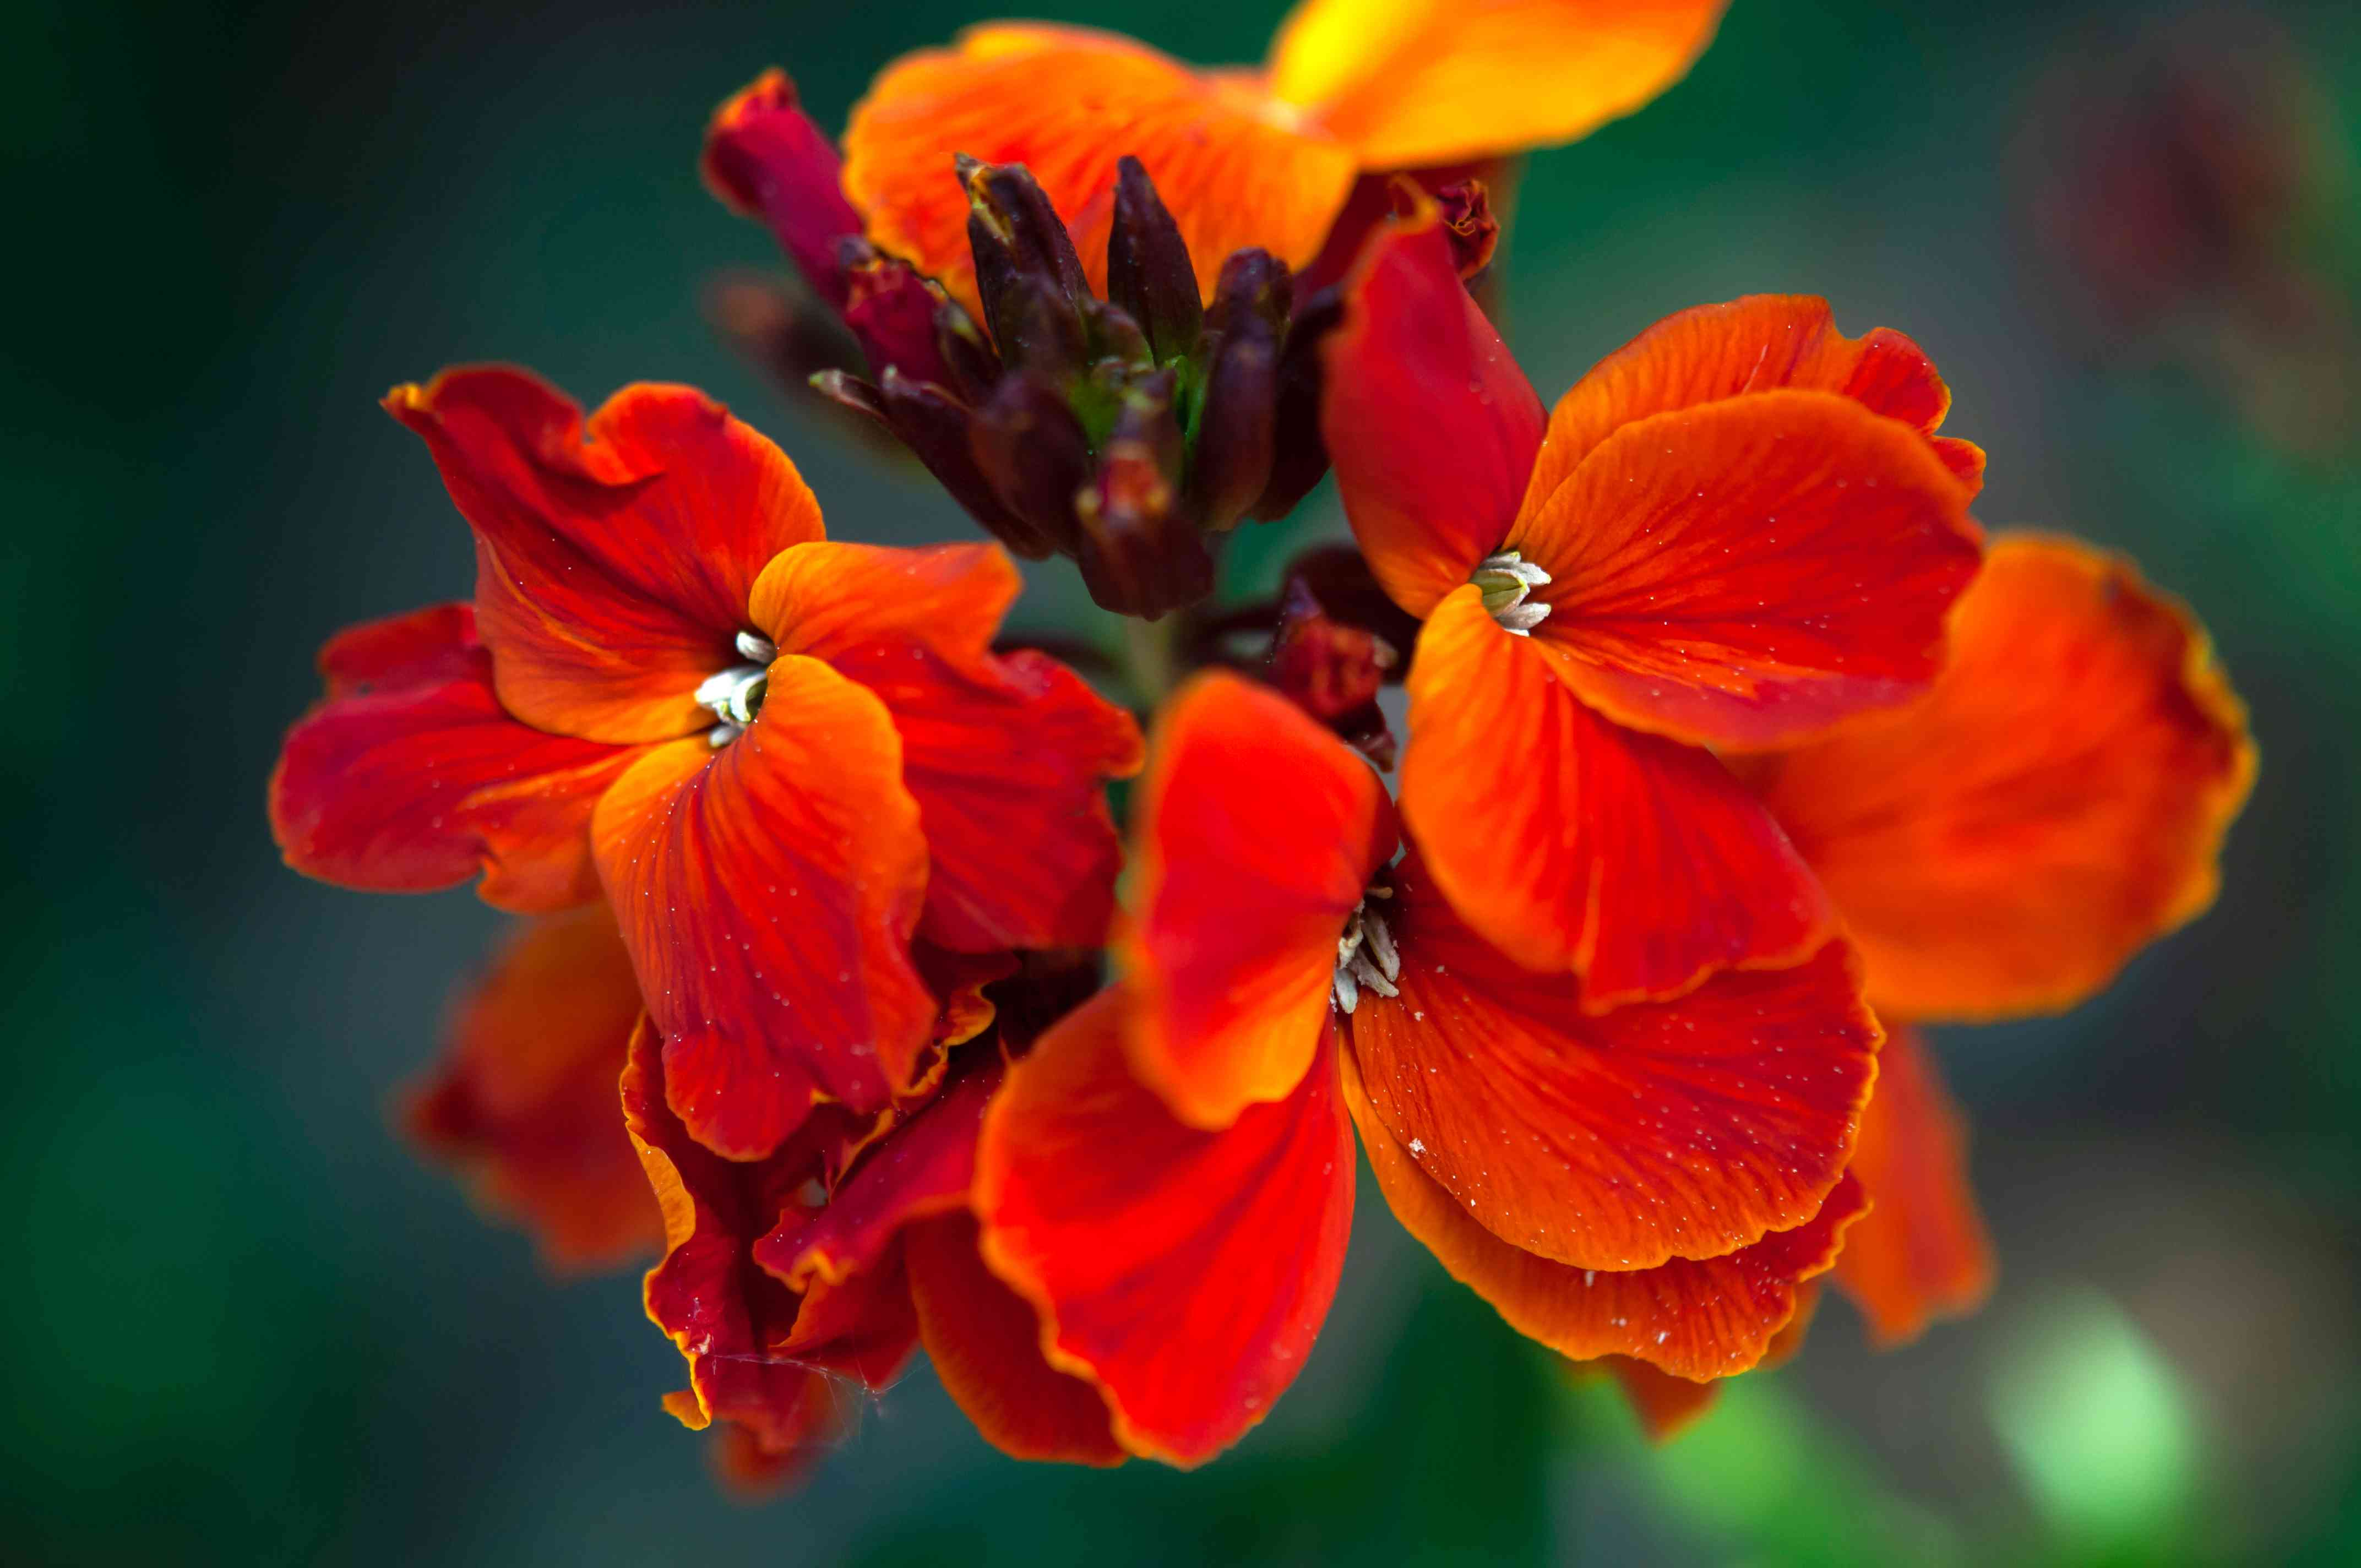 Fire king wallflower plant with red flowers and buds closeup